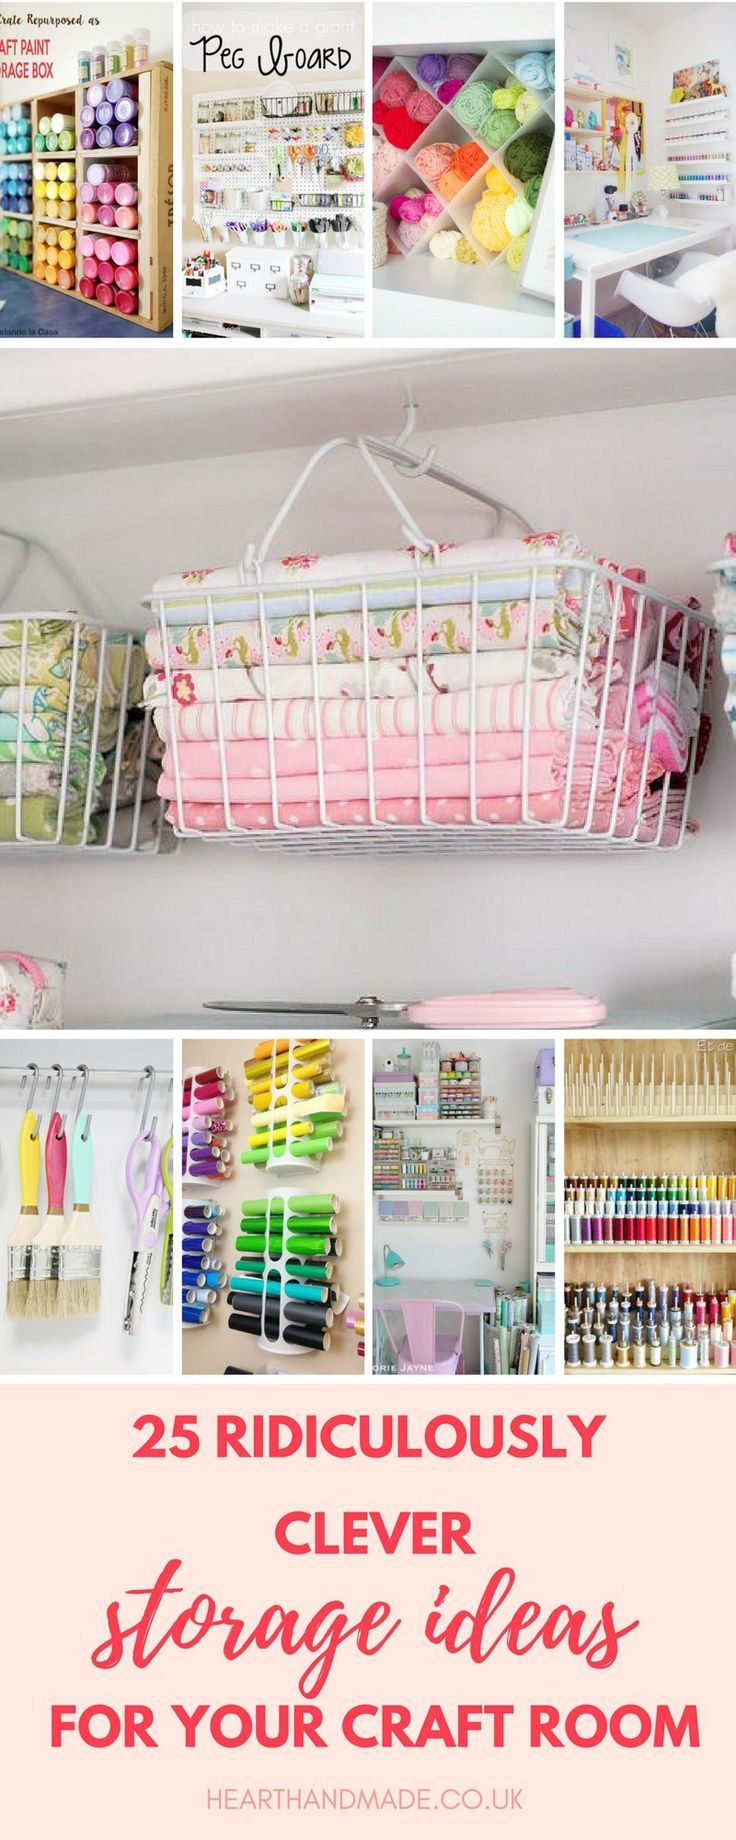 If you're in need of craft storage ideas for your craft room then this list is exactly what you need to read! This post has small space craft storage ideas galore, for utilizing every inch of available space in your craft room  #RePin by AT Social Media Marketing - Pinterest Marketing Specialists ATSocialMedia.co.uk